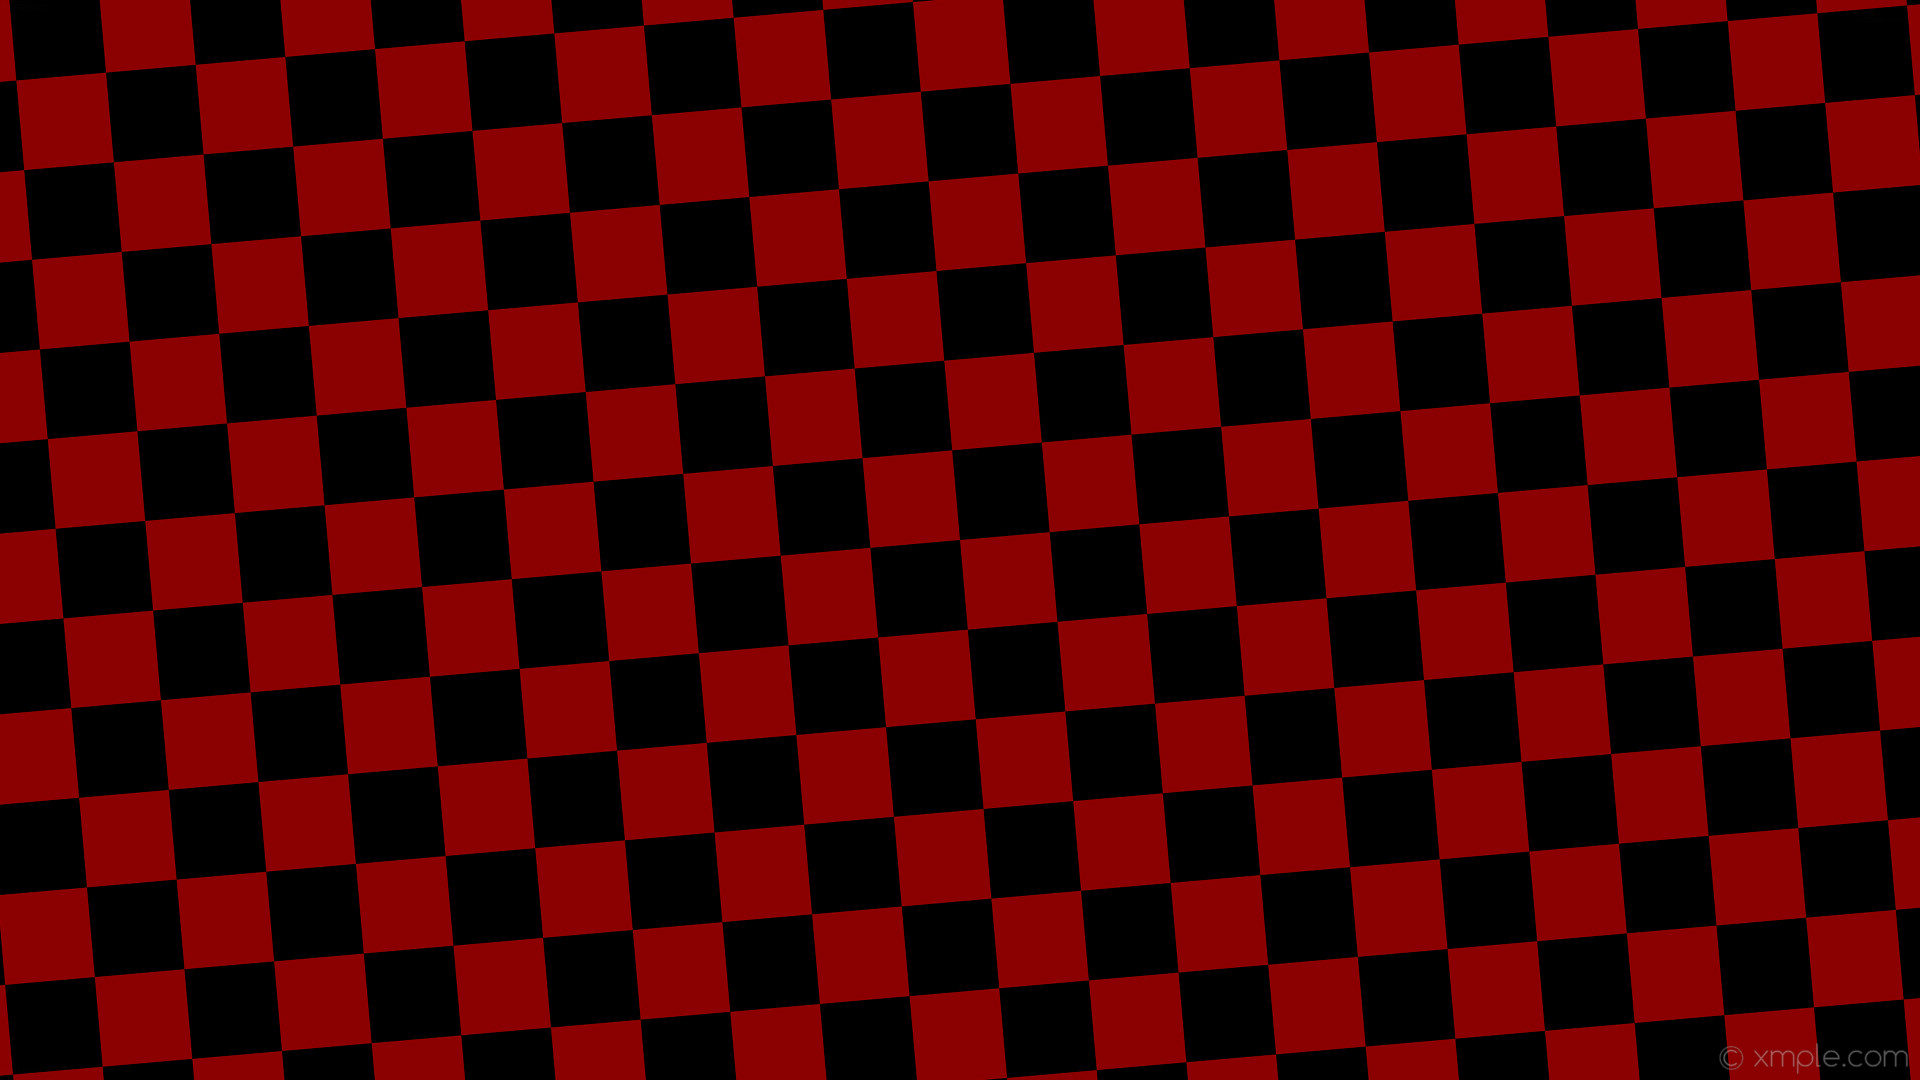 1920x1080 wallpaper red squares checkered black dark red #8b0000 #000000 diagonal 5°  90px